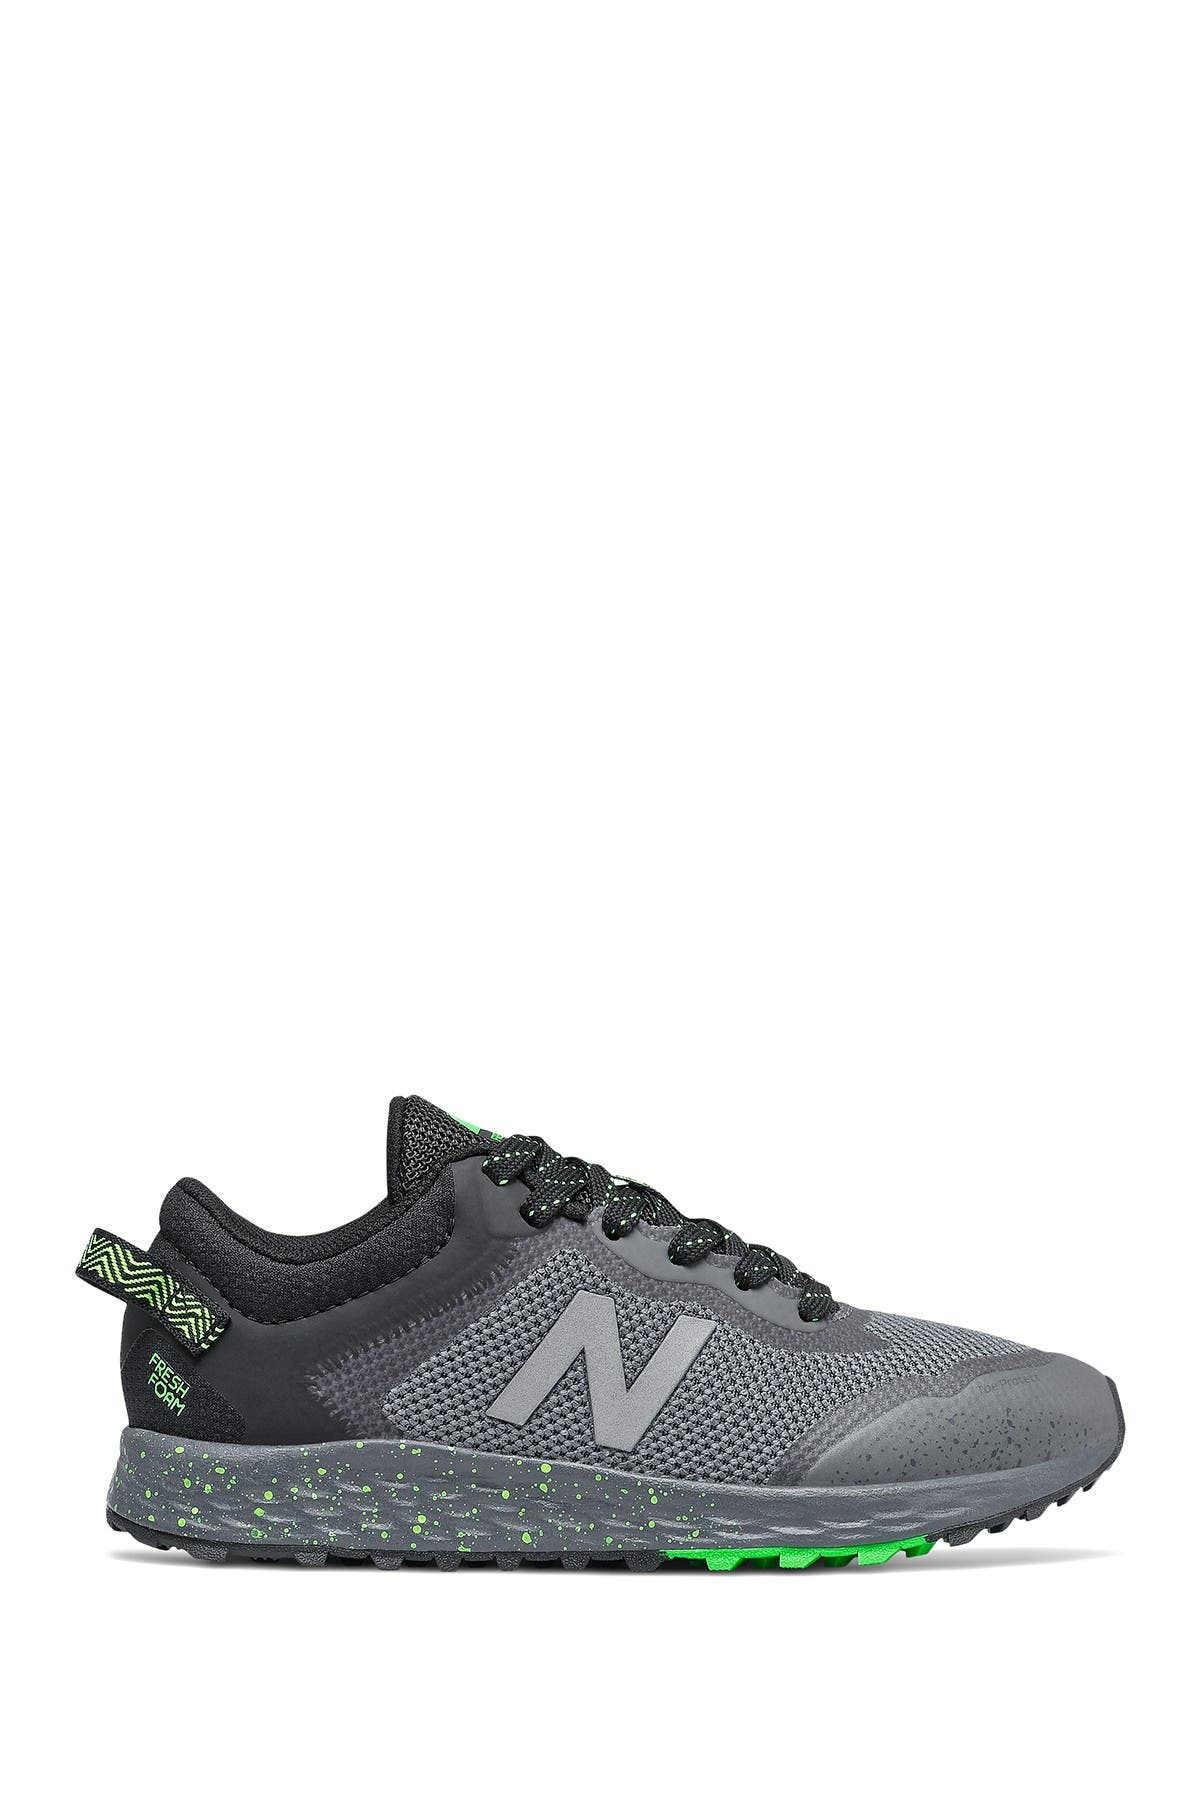 Image of New Balance Arishi V2 Running Shoe